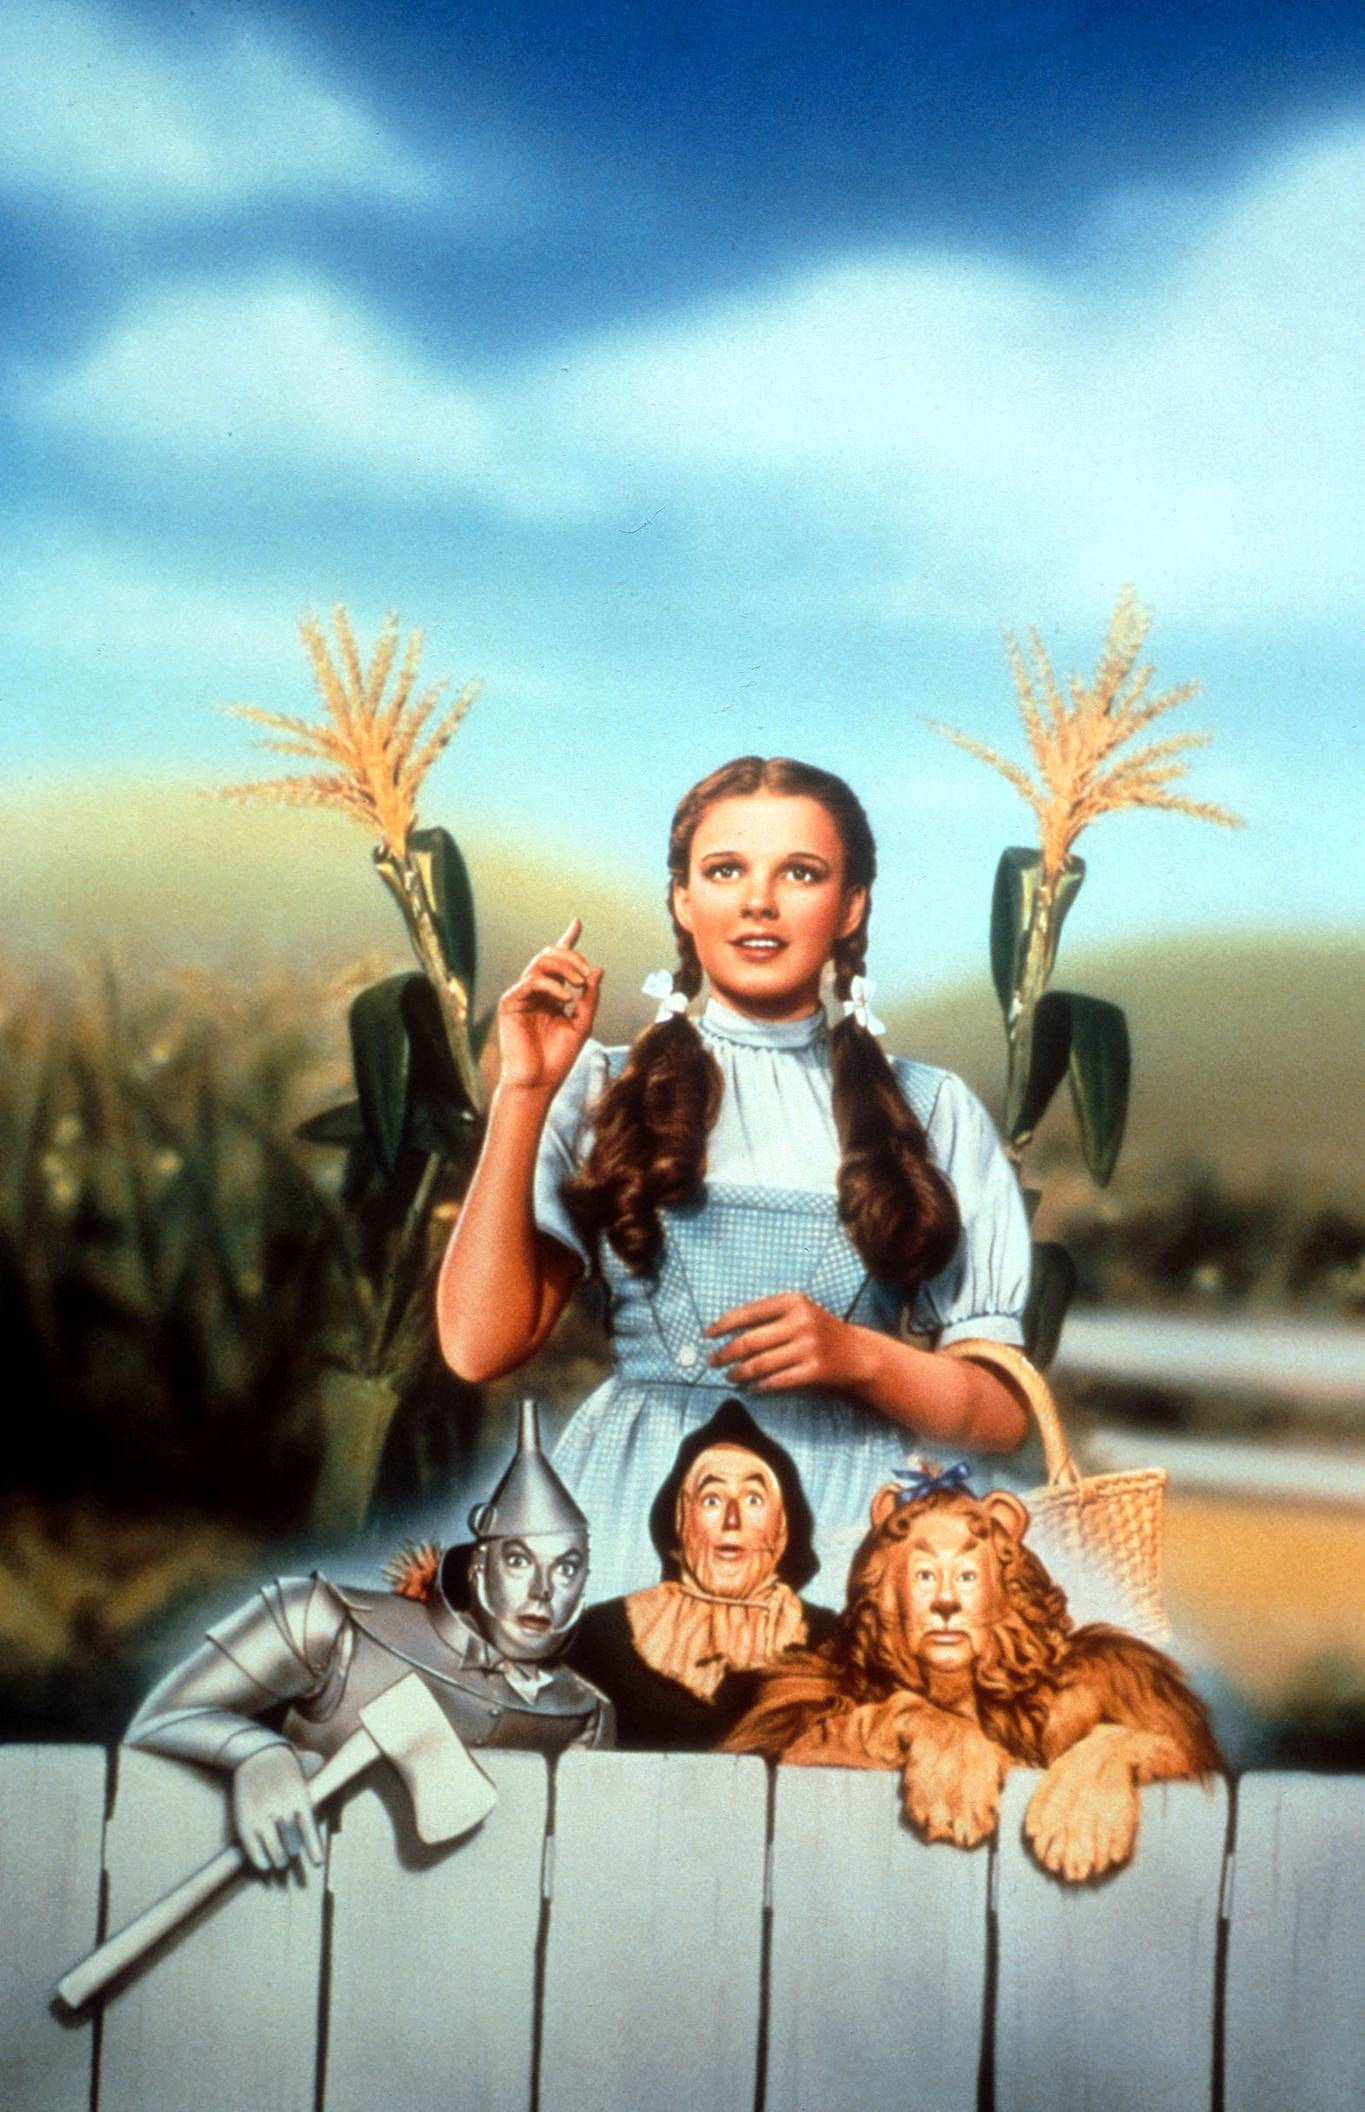 Wizard Of Oz Wallpaper [1365x2112